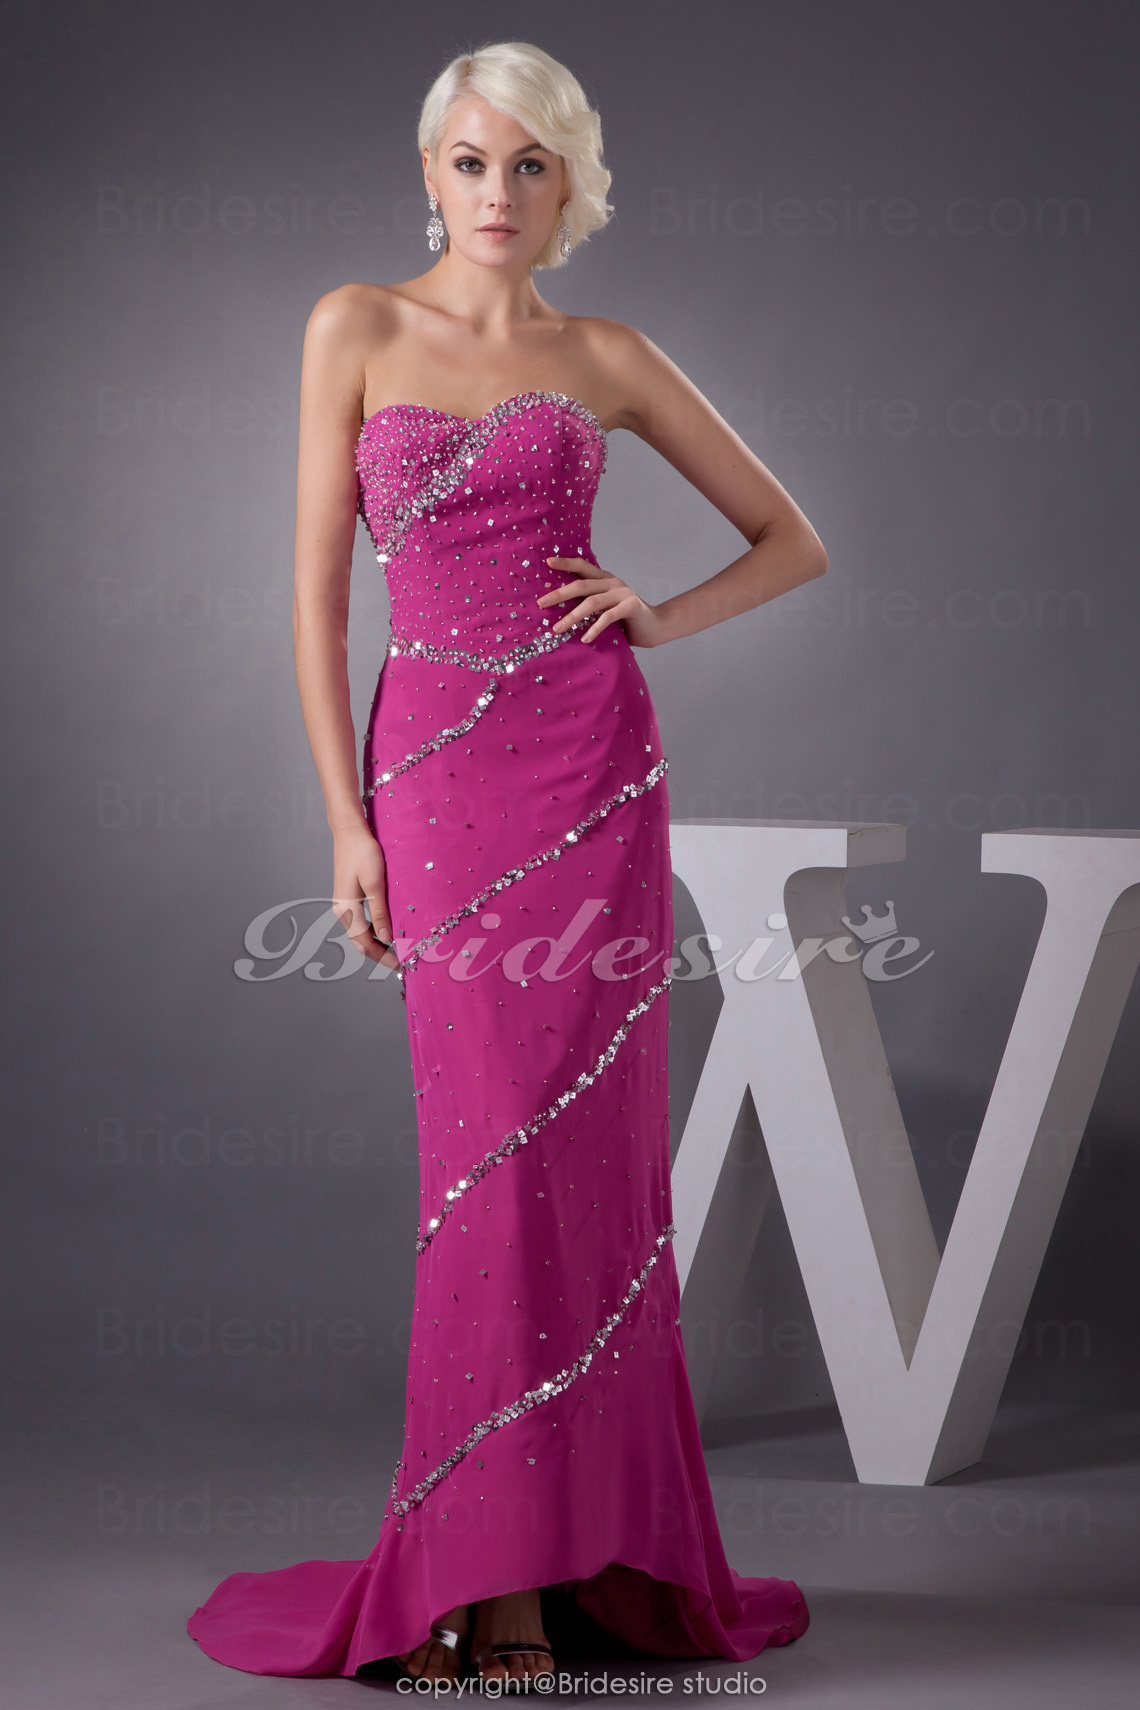 Sheath/Column Sweetheart Floor-length Sweep/Brush Train Sleeveless Chiffon Dress